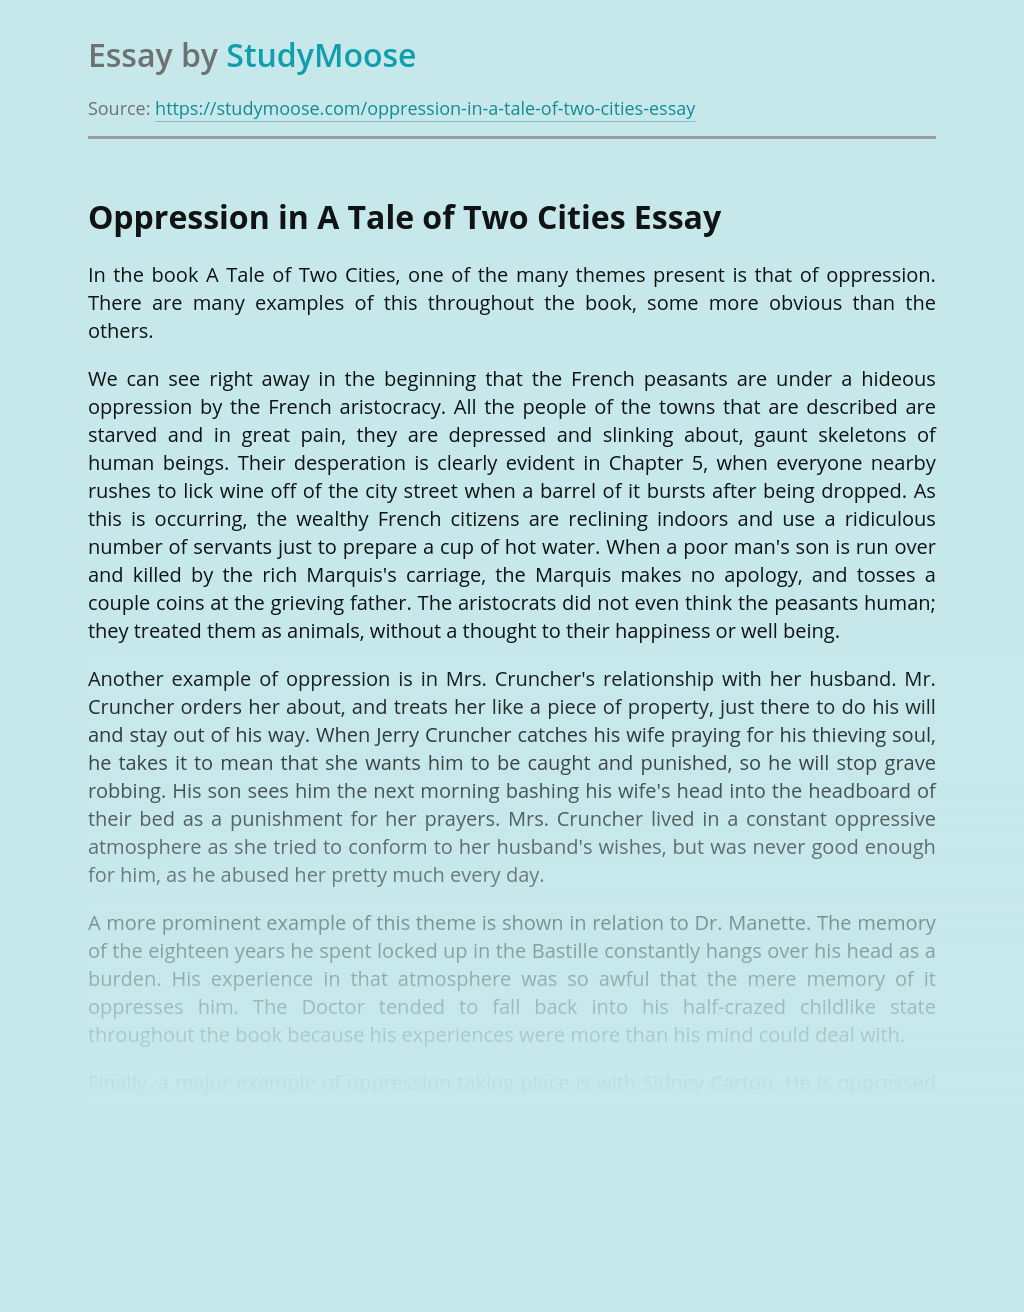 Oppression in A Tale of Two Cities